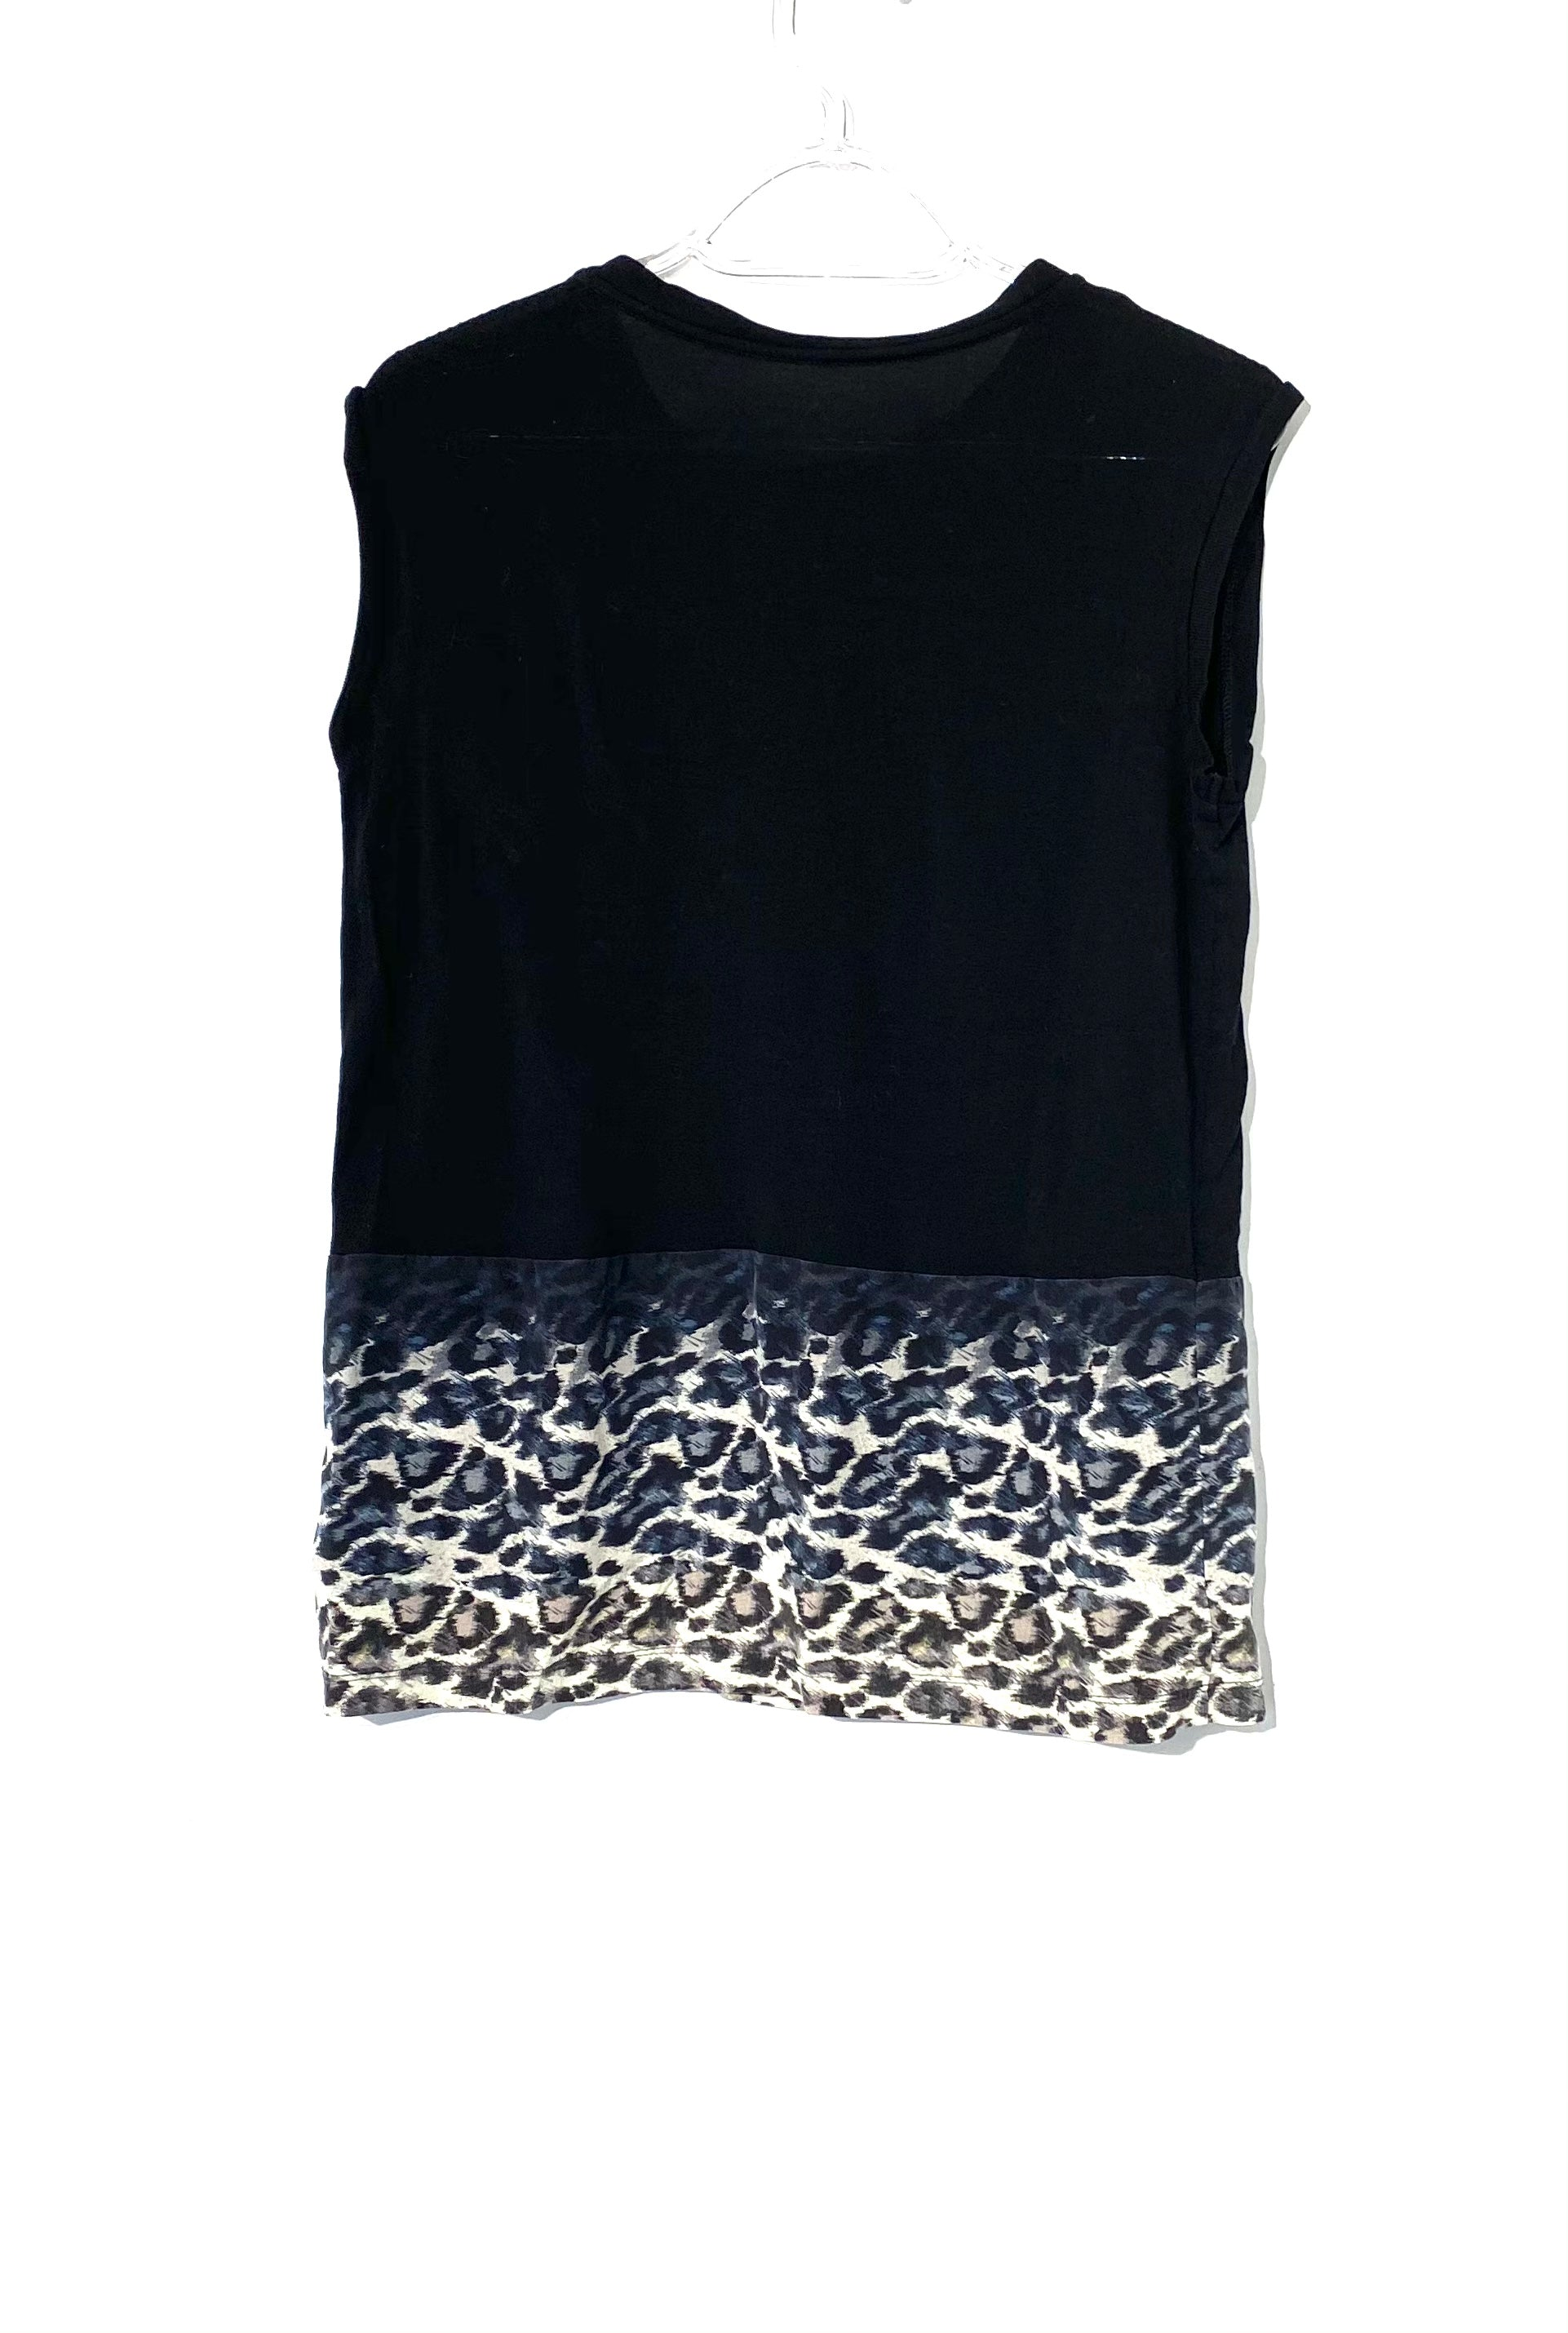 Photo #1 - BRAND: ALL SAINTS <BR>STYLE: TOP SLEEVELESS <BR>COLOR: ANIMAL PRINT <BR>SIZE: S <BR>SKU: 262-26275-71835